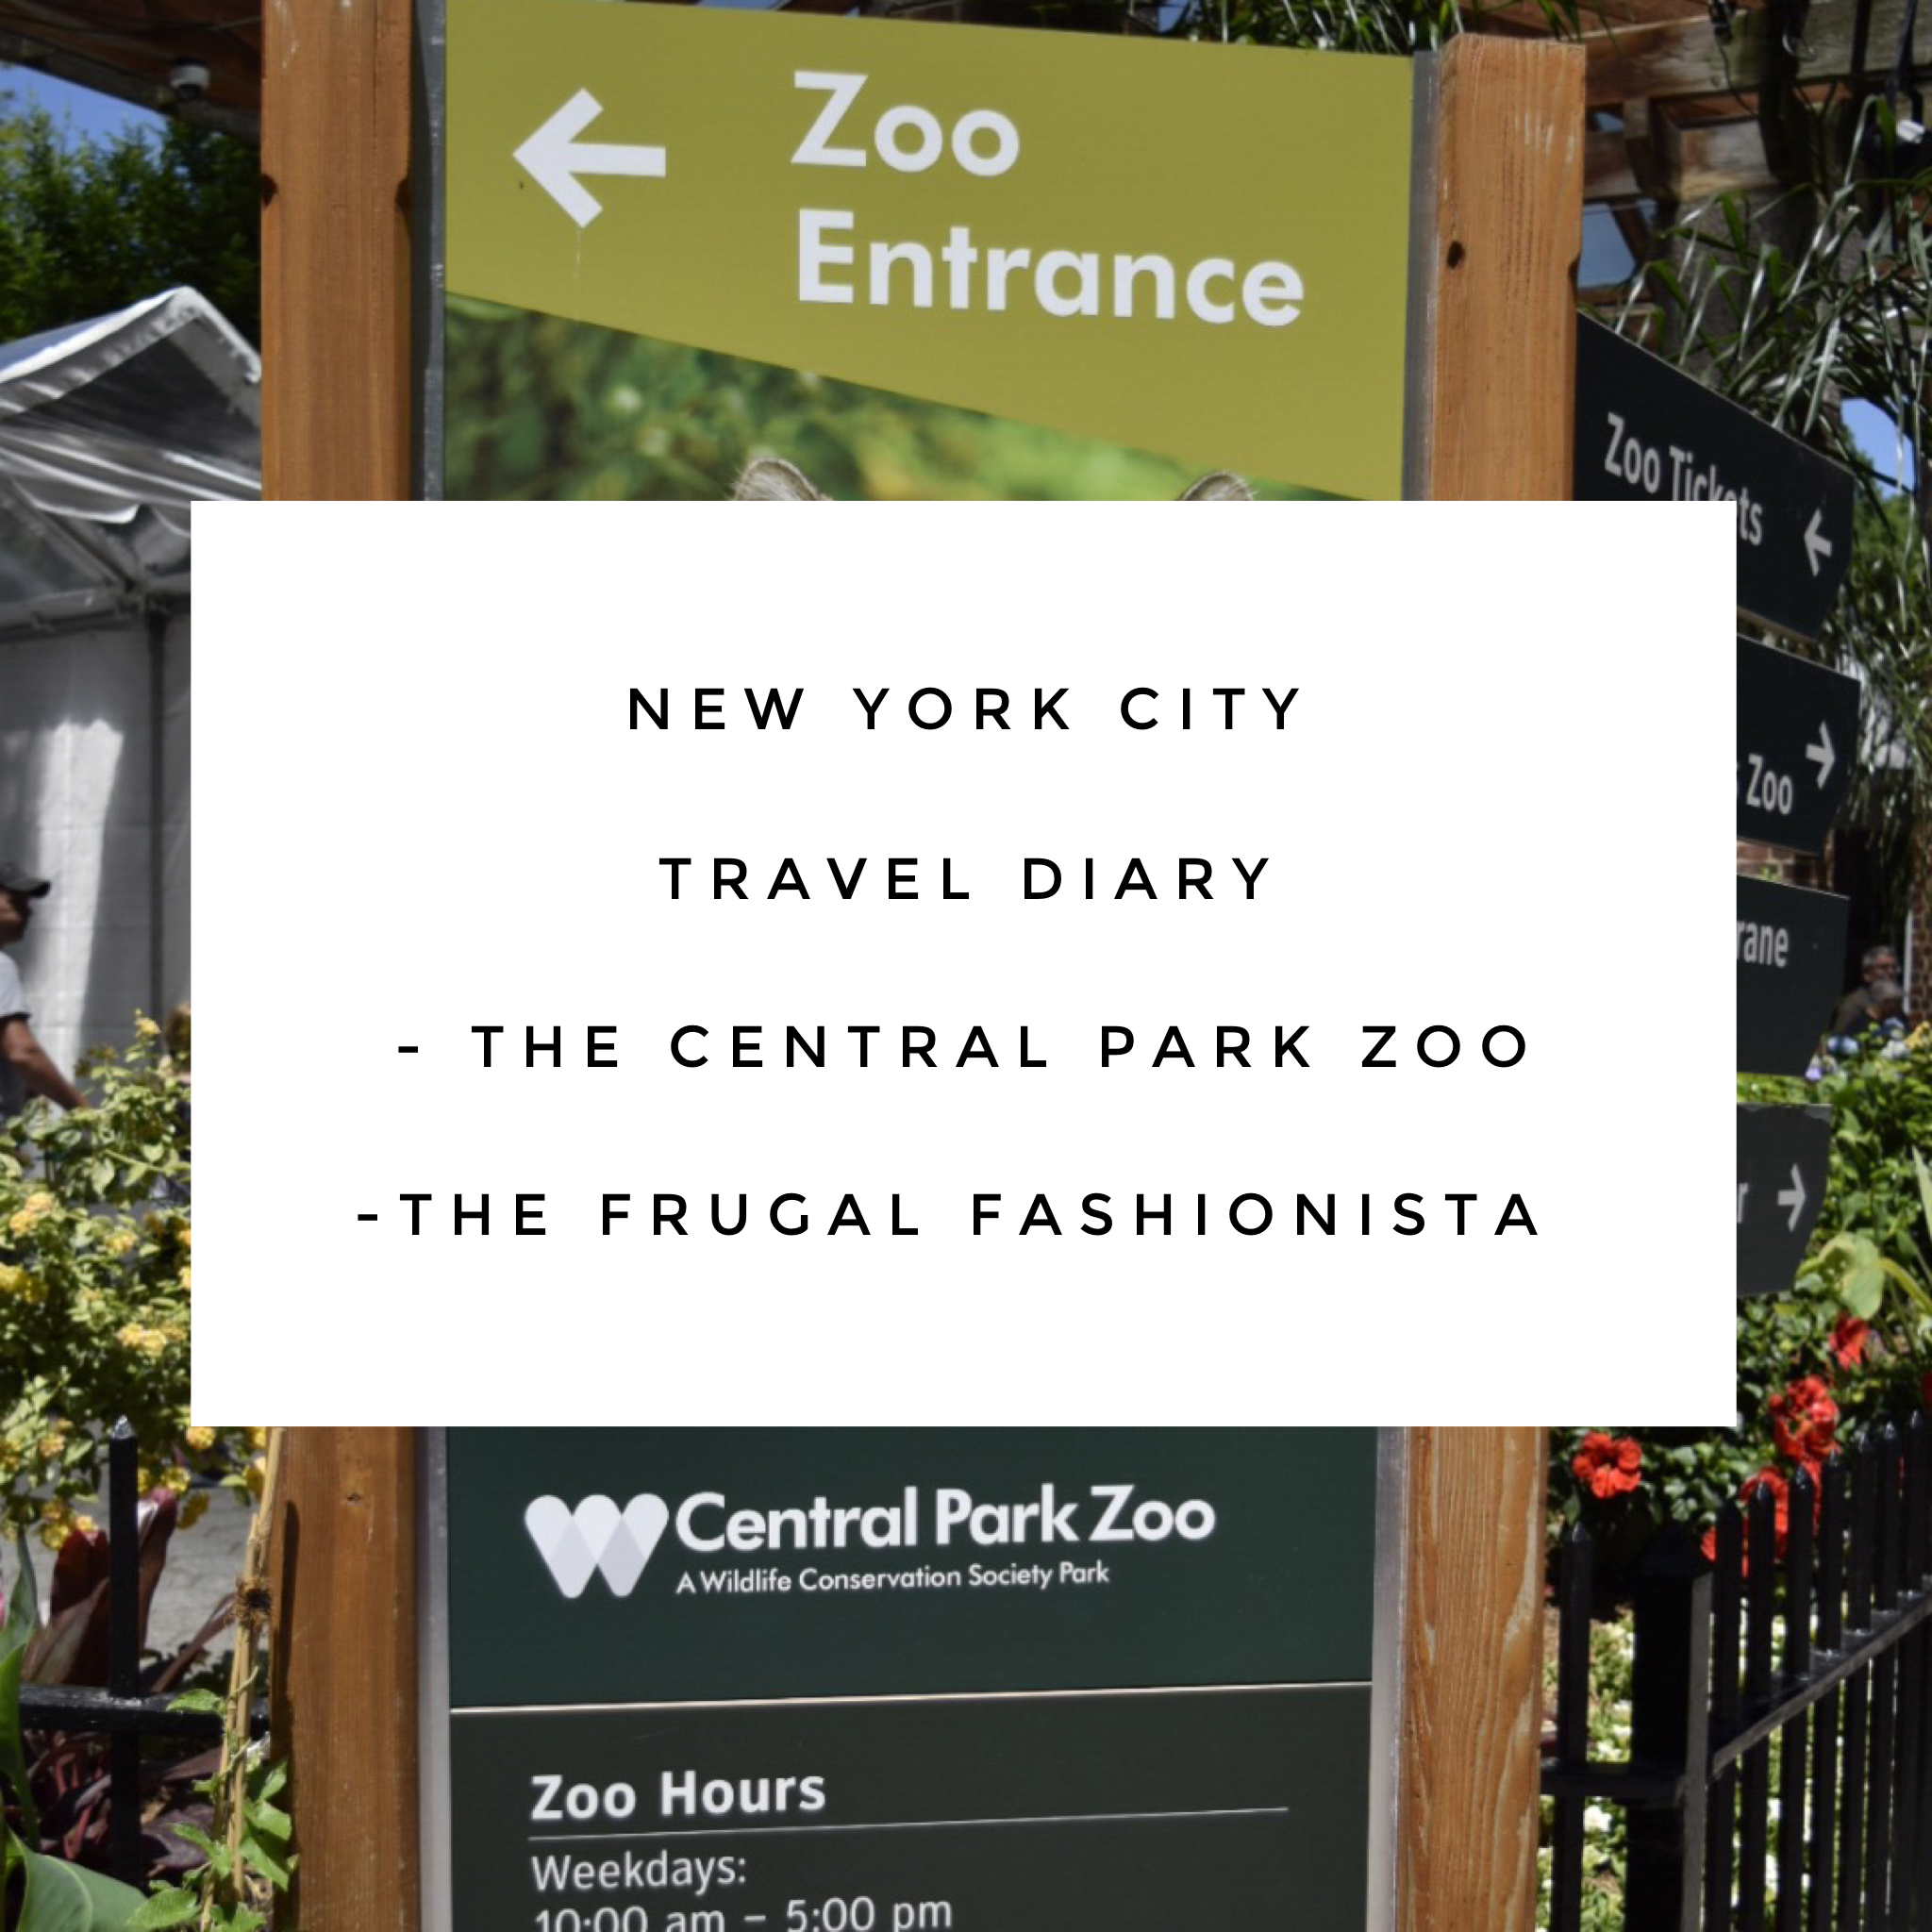 The Frugal Fashionista: New York Travel Diary - The Central Park Zoo